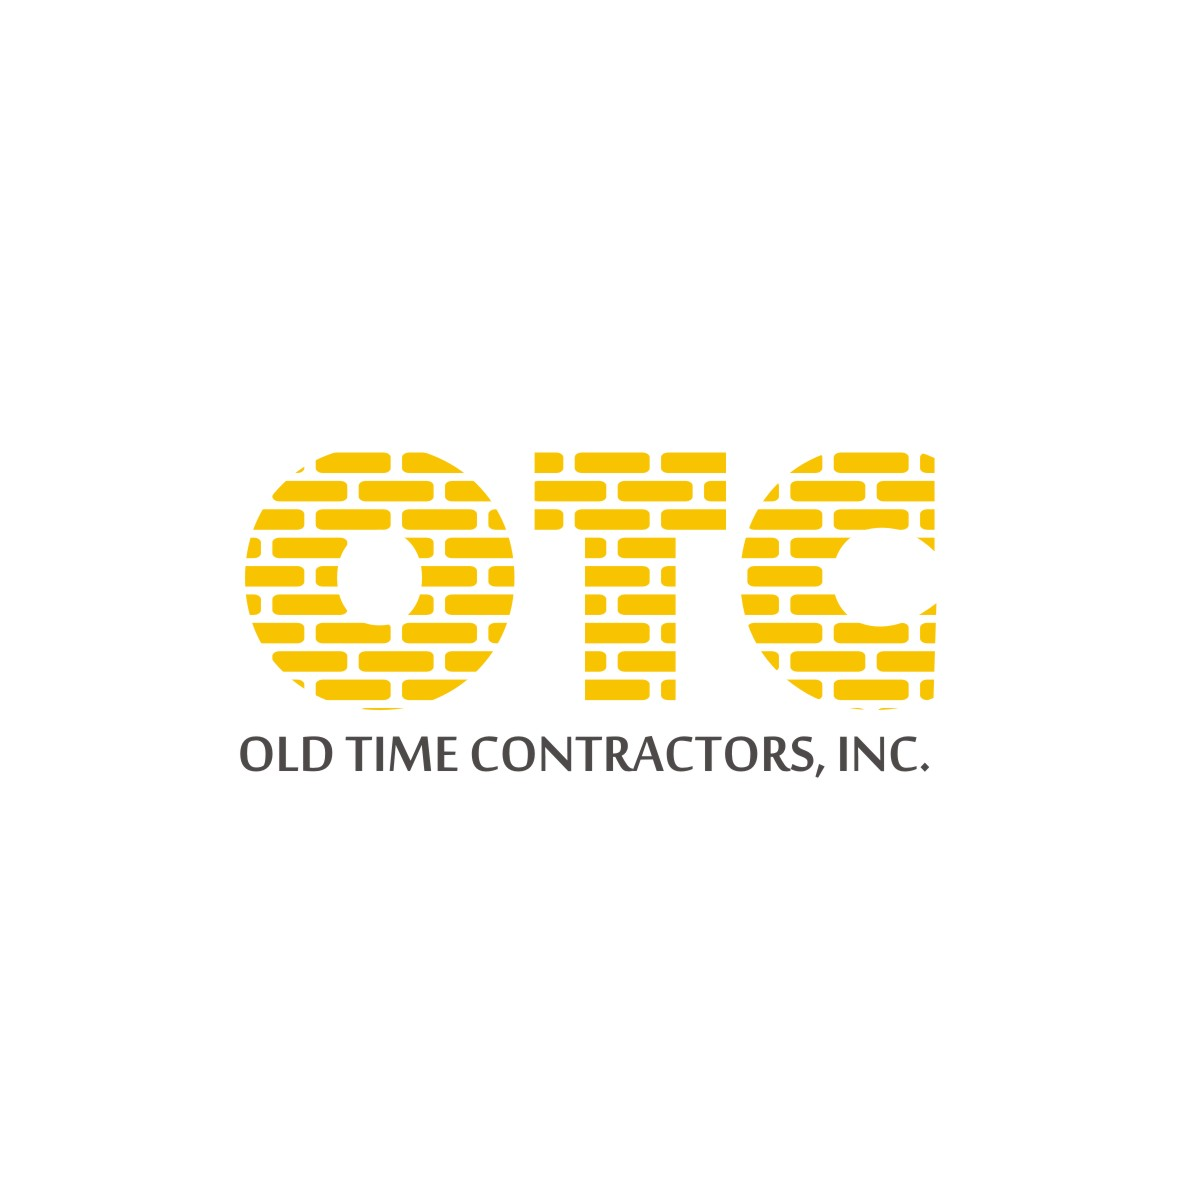 Logo Design by arteo_design - Entry No. 117 in the Logo Design Contest Old Time Contractors, Inc. (new brand:  OTC, Inc.) Logo Design.